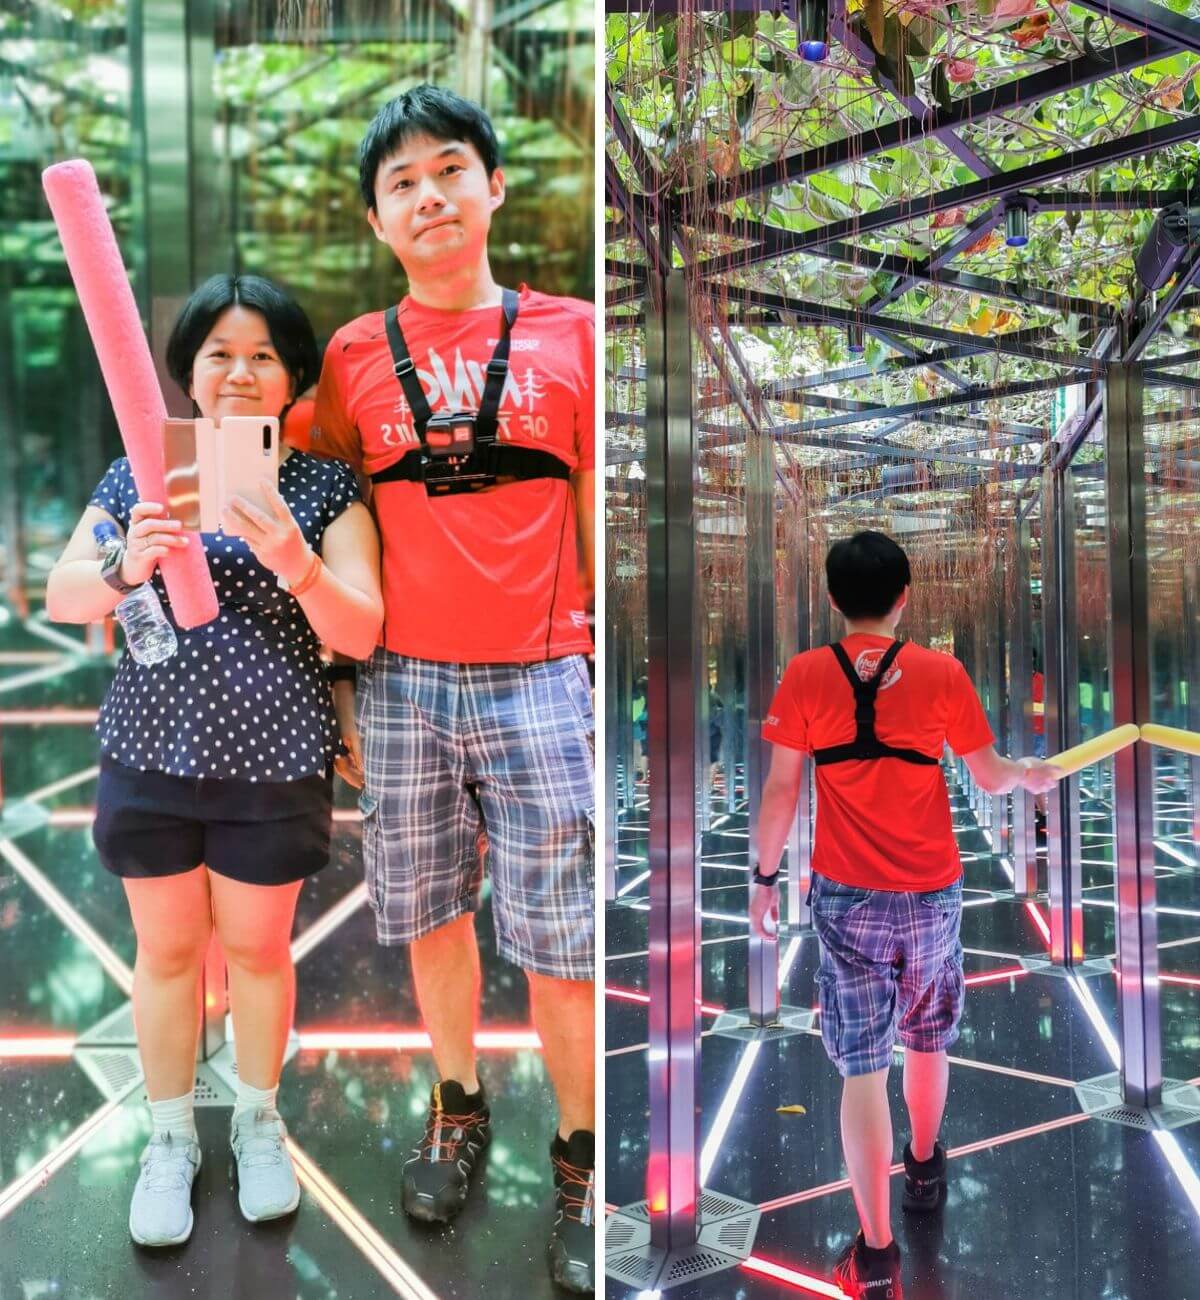 Mirrow Maze - Jewel Canopy Park at Changi Airport Singapore